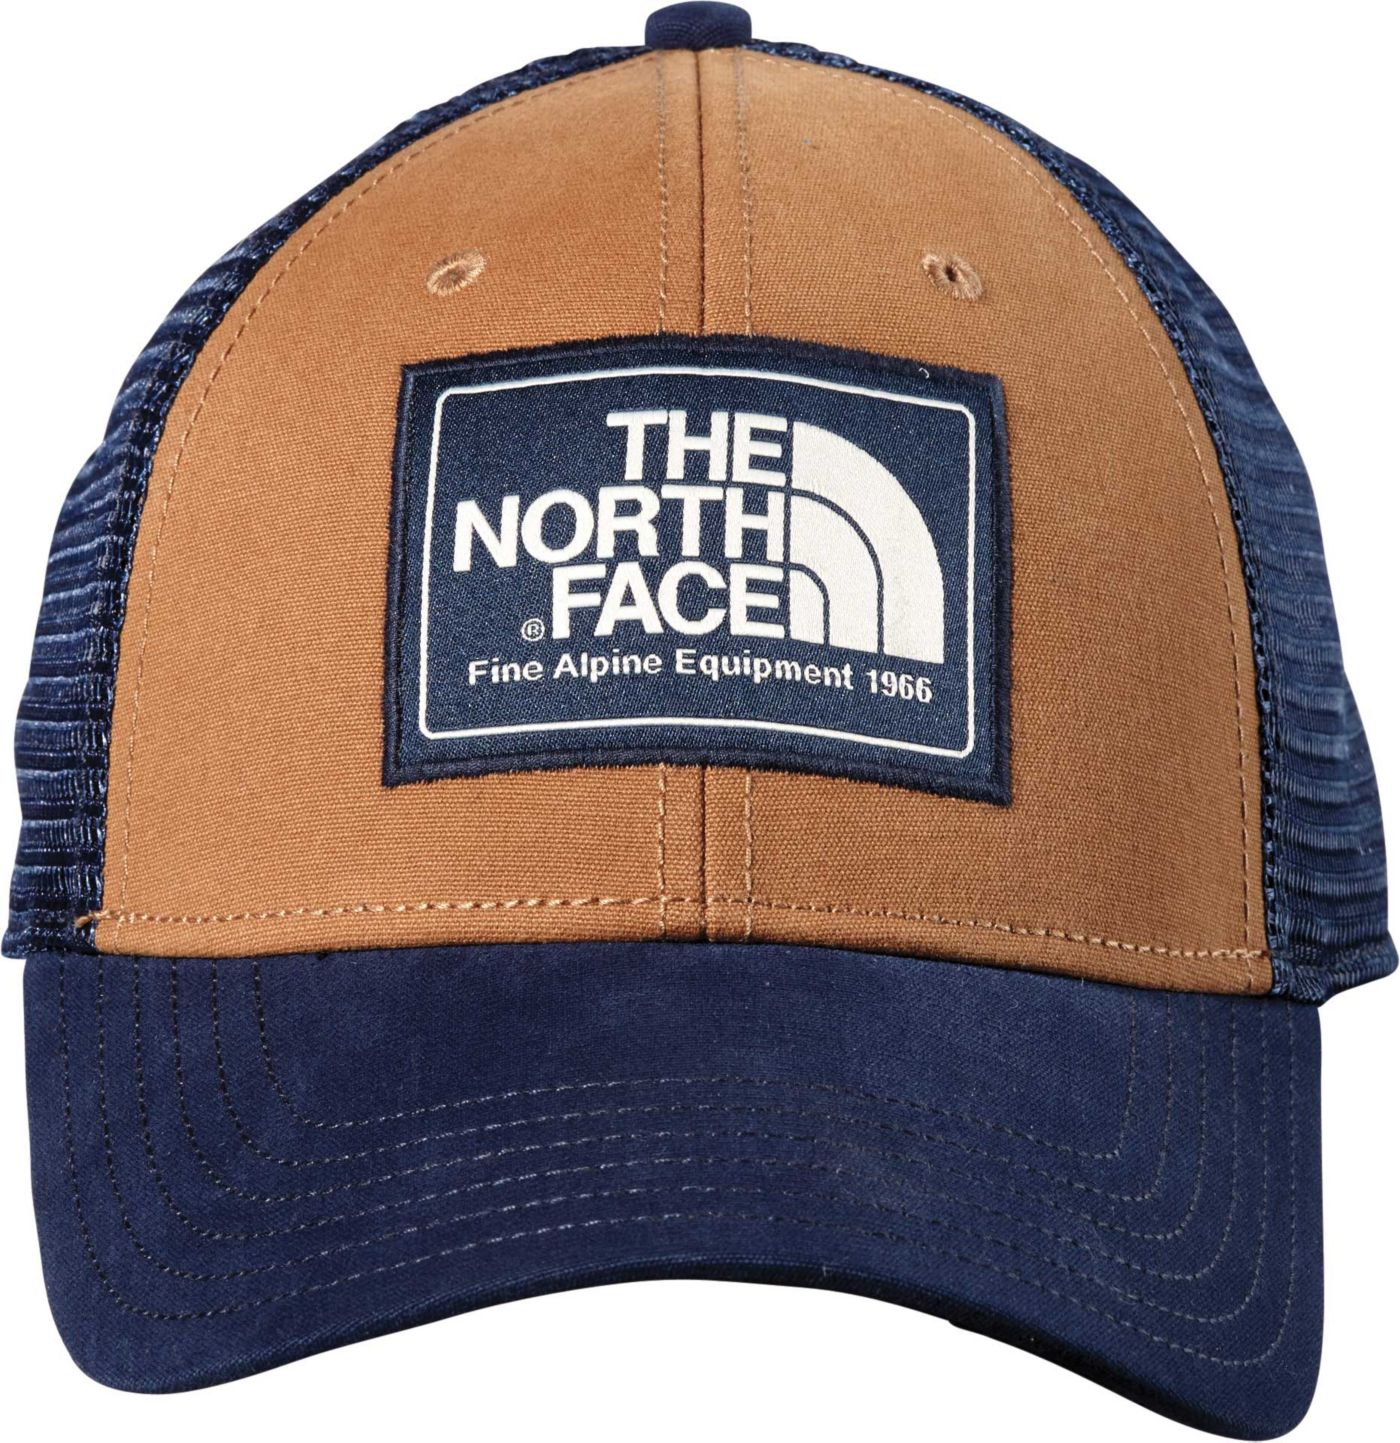 de7677f64d1056 The North Face Men's Mudder Trucker Hat | Field & Stream